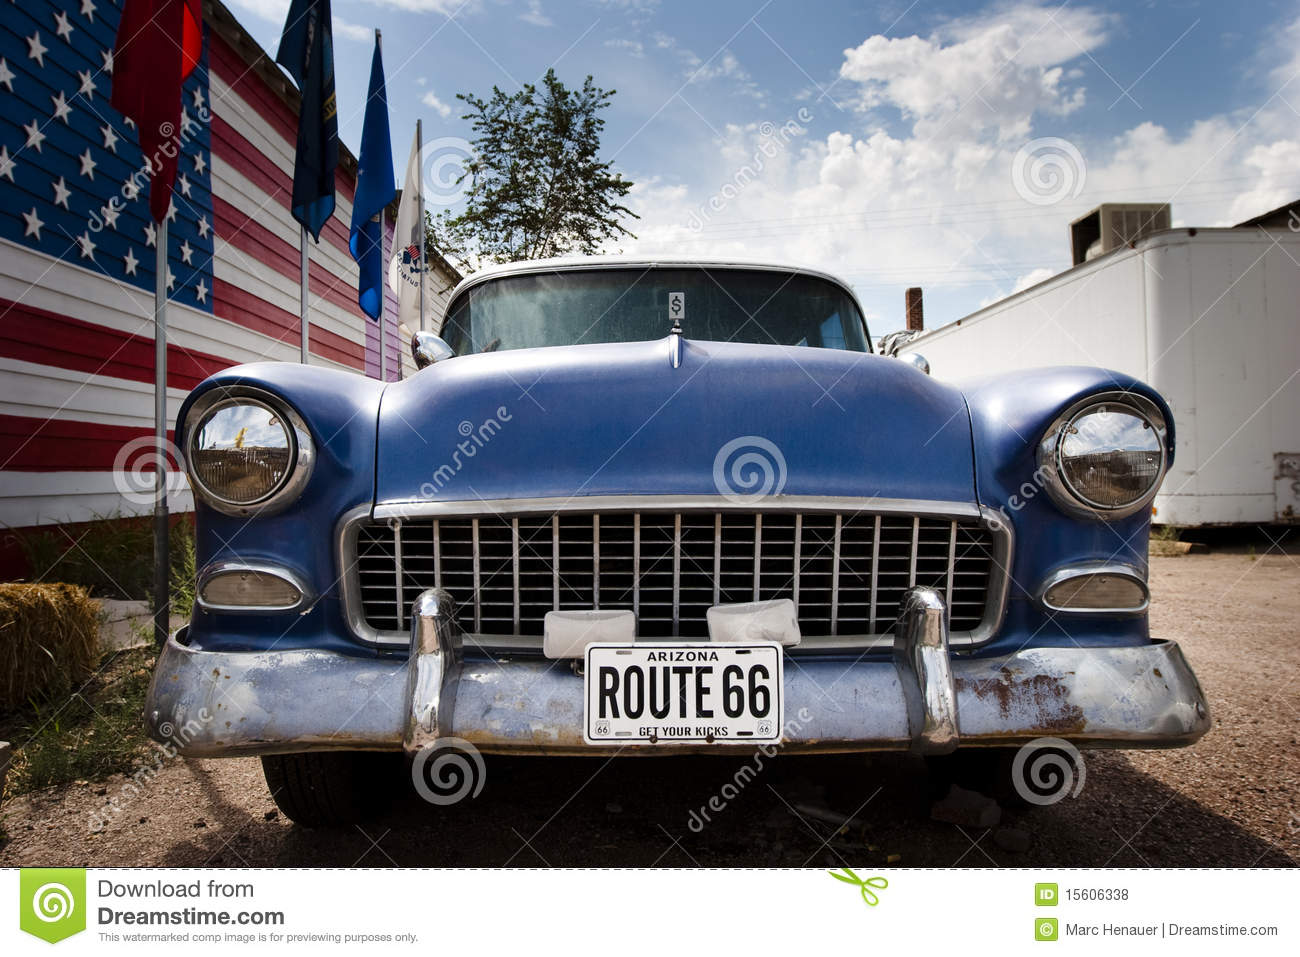 American car and flag USA on route 66